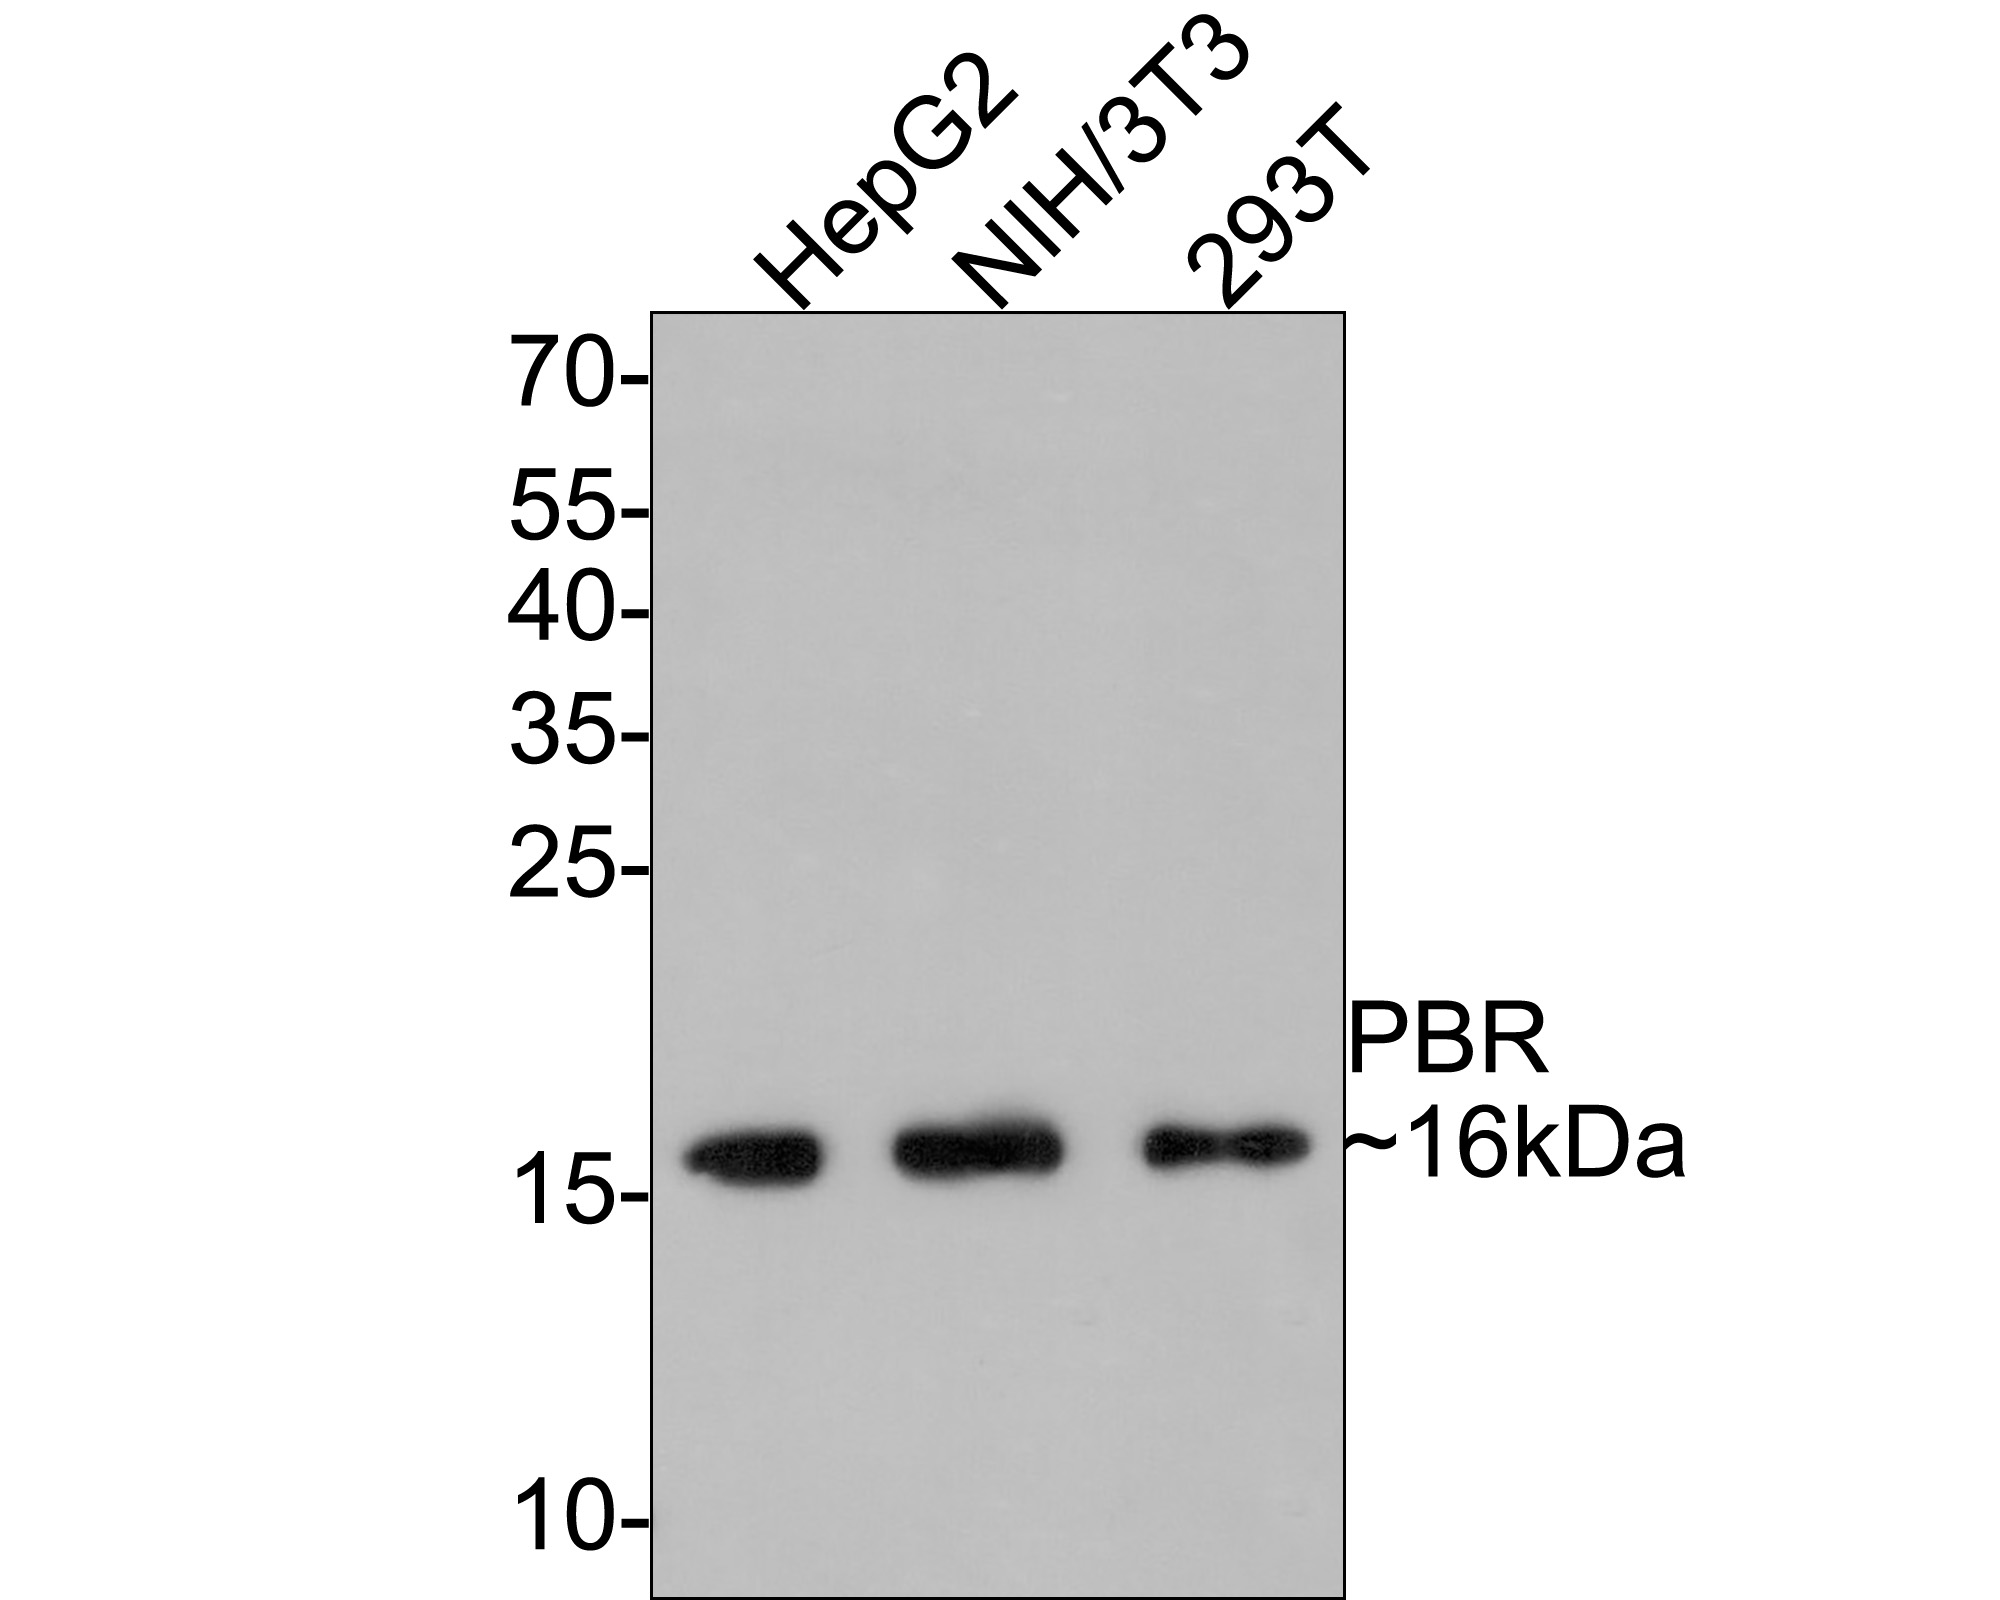 Western blot analysis of PBR on different lysates. Proteins were transferred to a PVDF membrane and blocked with 5% BSA in PBS for 1 hour at room temperature. The primary antibody (ET1601-19, 1/500) was used in 5% BSA at room temperature for 2 hours. Goat Anti-Rabbit IgG - HRP Secondary Antibody (HA1001) at 1:5,000 dilution was used for 1 hour at room temperature.<br />  Positive control: <br />  Lane 1: 293T cell lysate<br />  Lane 2: NIH/3T3 cell lysate<br />  Lane 3: HepG2 cell lysate